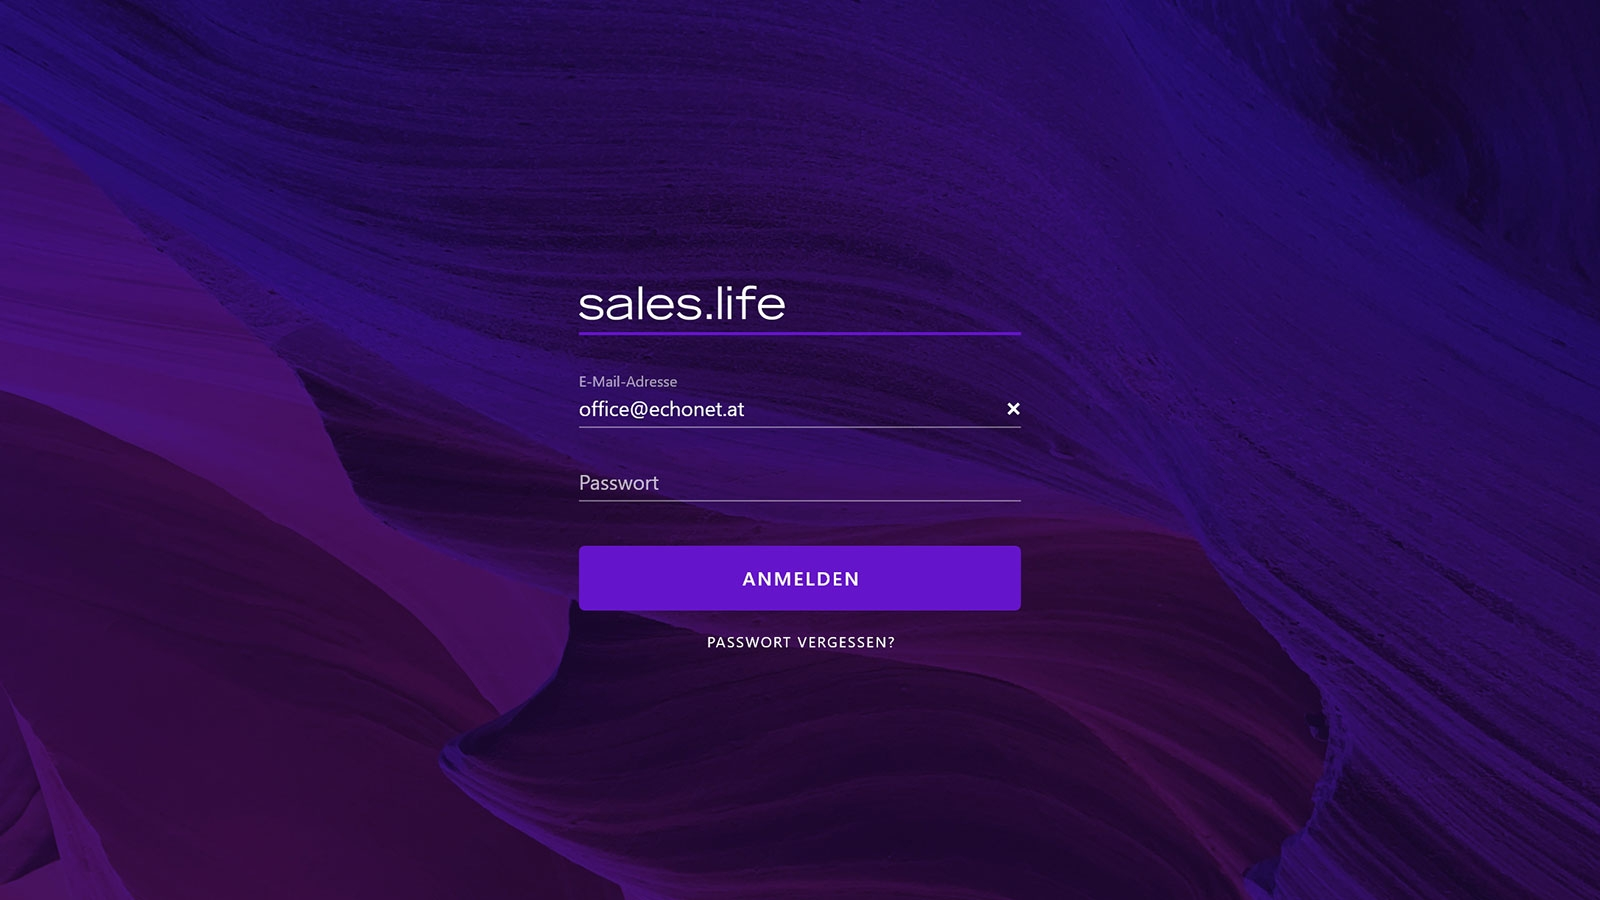 sales.life 1 | Back-End-Screen 01 Login © echonet communication